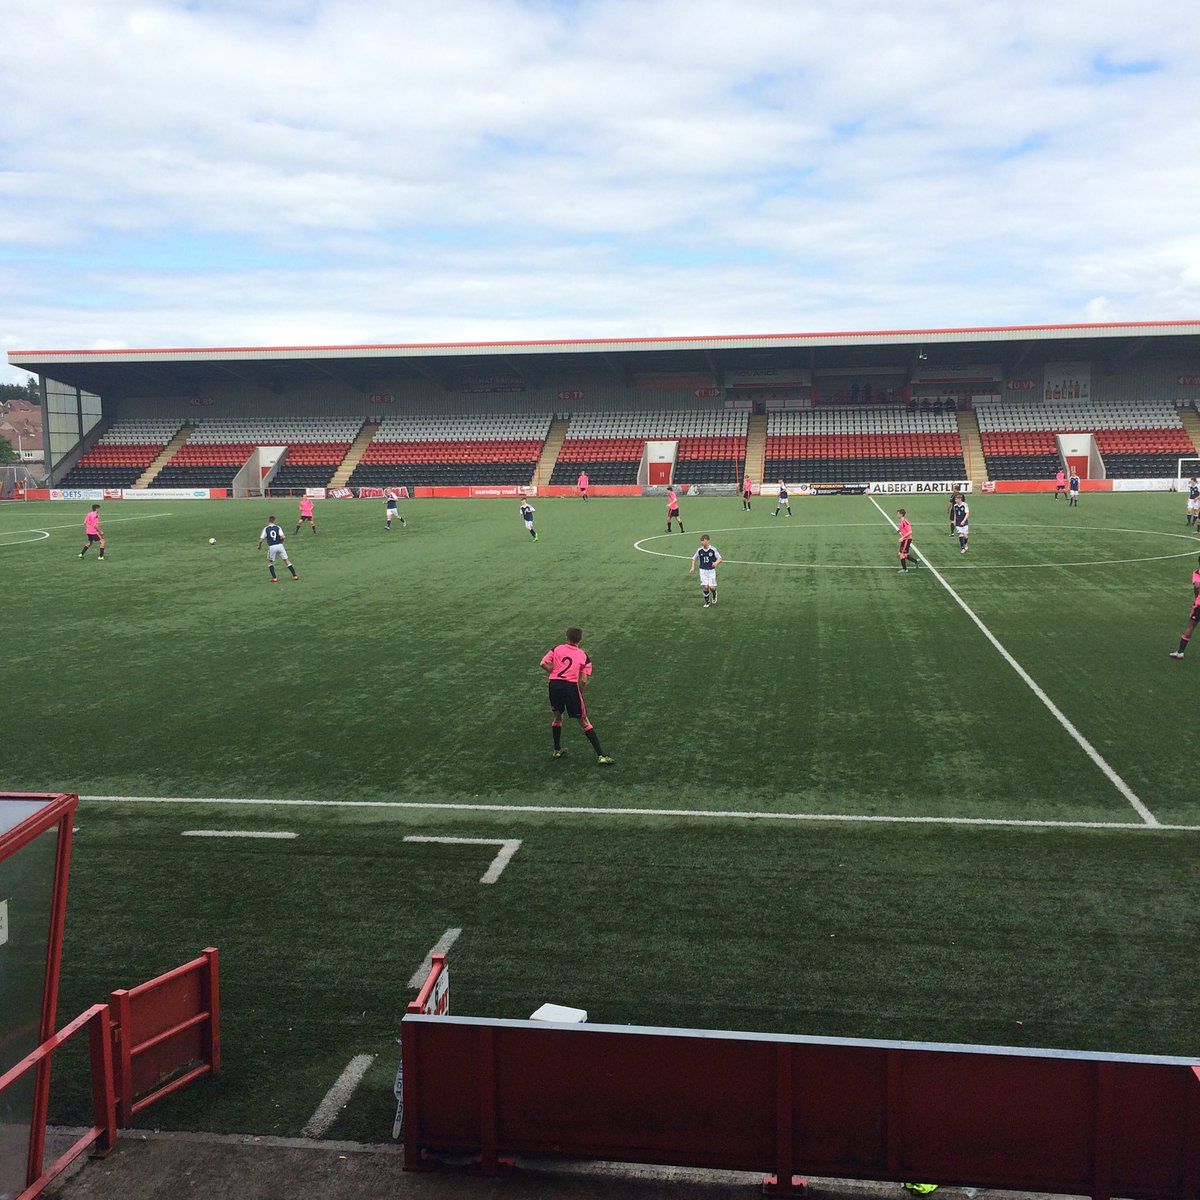 Great day watching the @ScottishFA stars of tomorrow #U15 #ViolaFC https://t.co/3cLKOk30CP